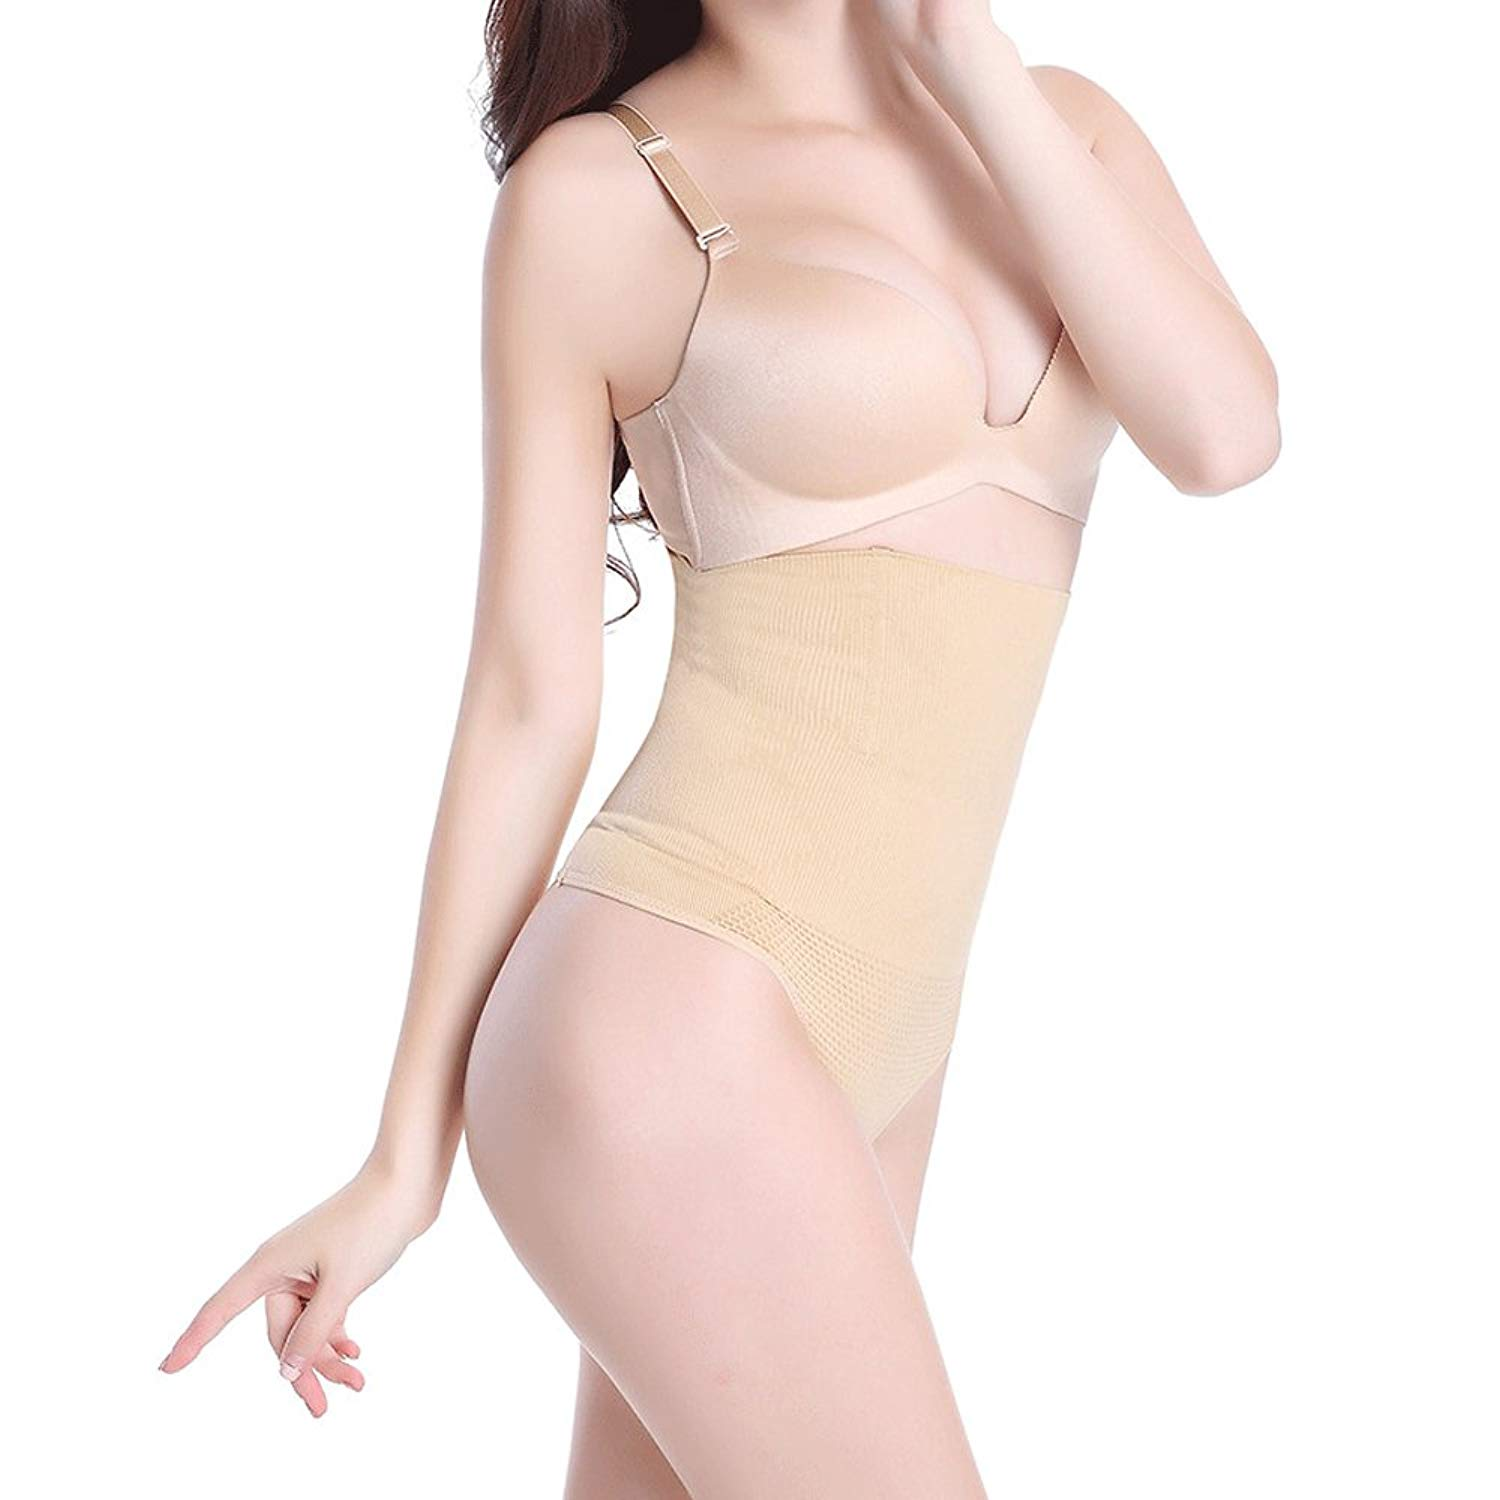 b7dbf720d50 Get Quotations · Pop Fashion Womens Shapewear Thong Panties Bodysuit High Waist  Tummy Control Body Shaper Thong Underwear MSRP